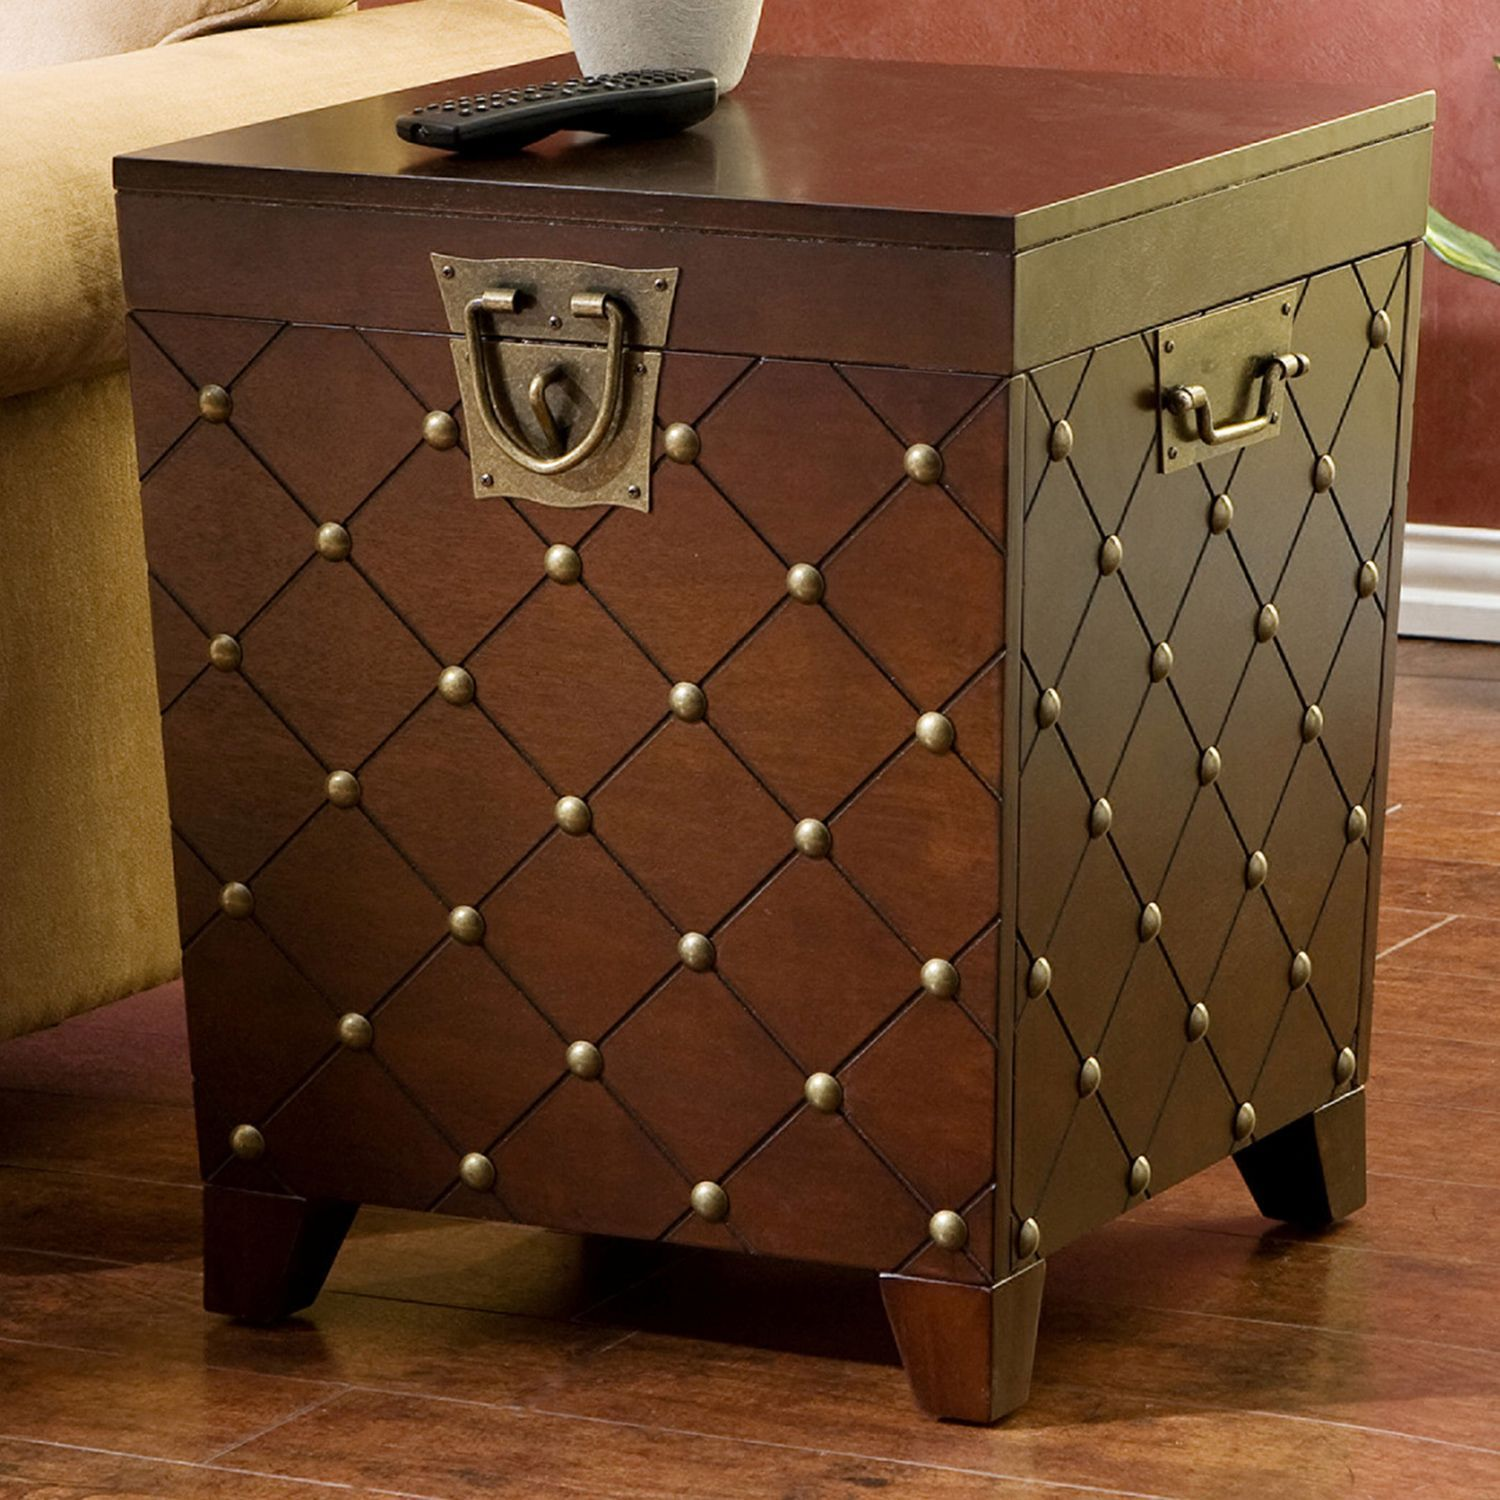 This end table is a steal and the perfect t for any interior